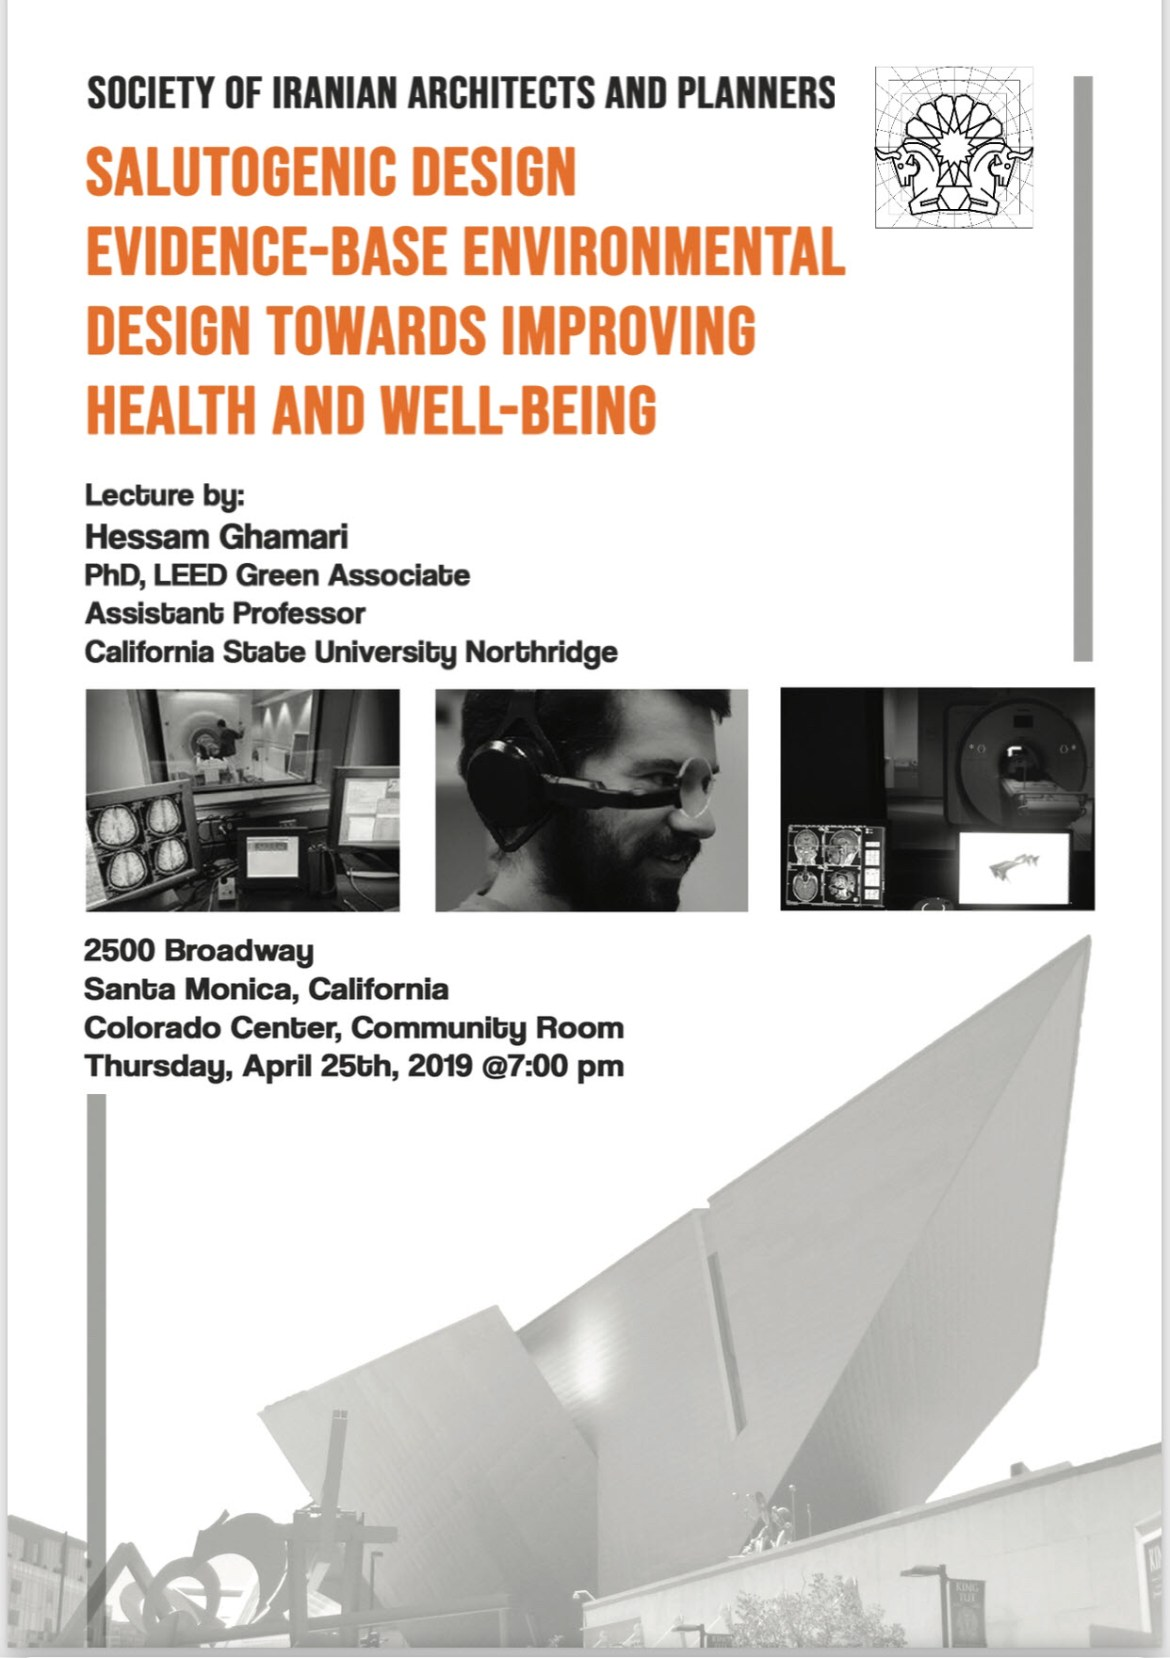 SALUTOGENIC DESIGN EVIDENCE-BASE ENVIRONMENTAL DESIGN TOWARDS IMPROVING HEALTH AND WELL-BEING